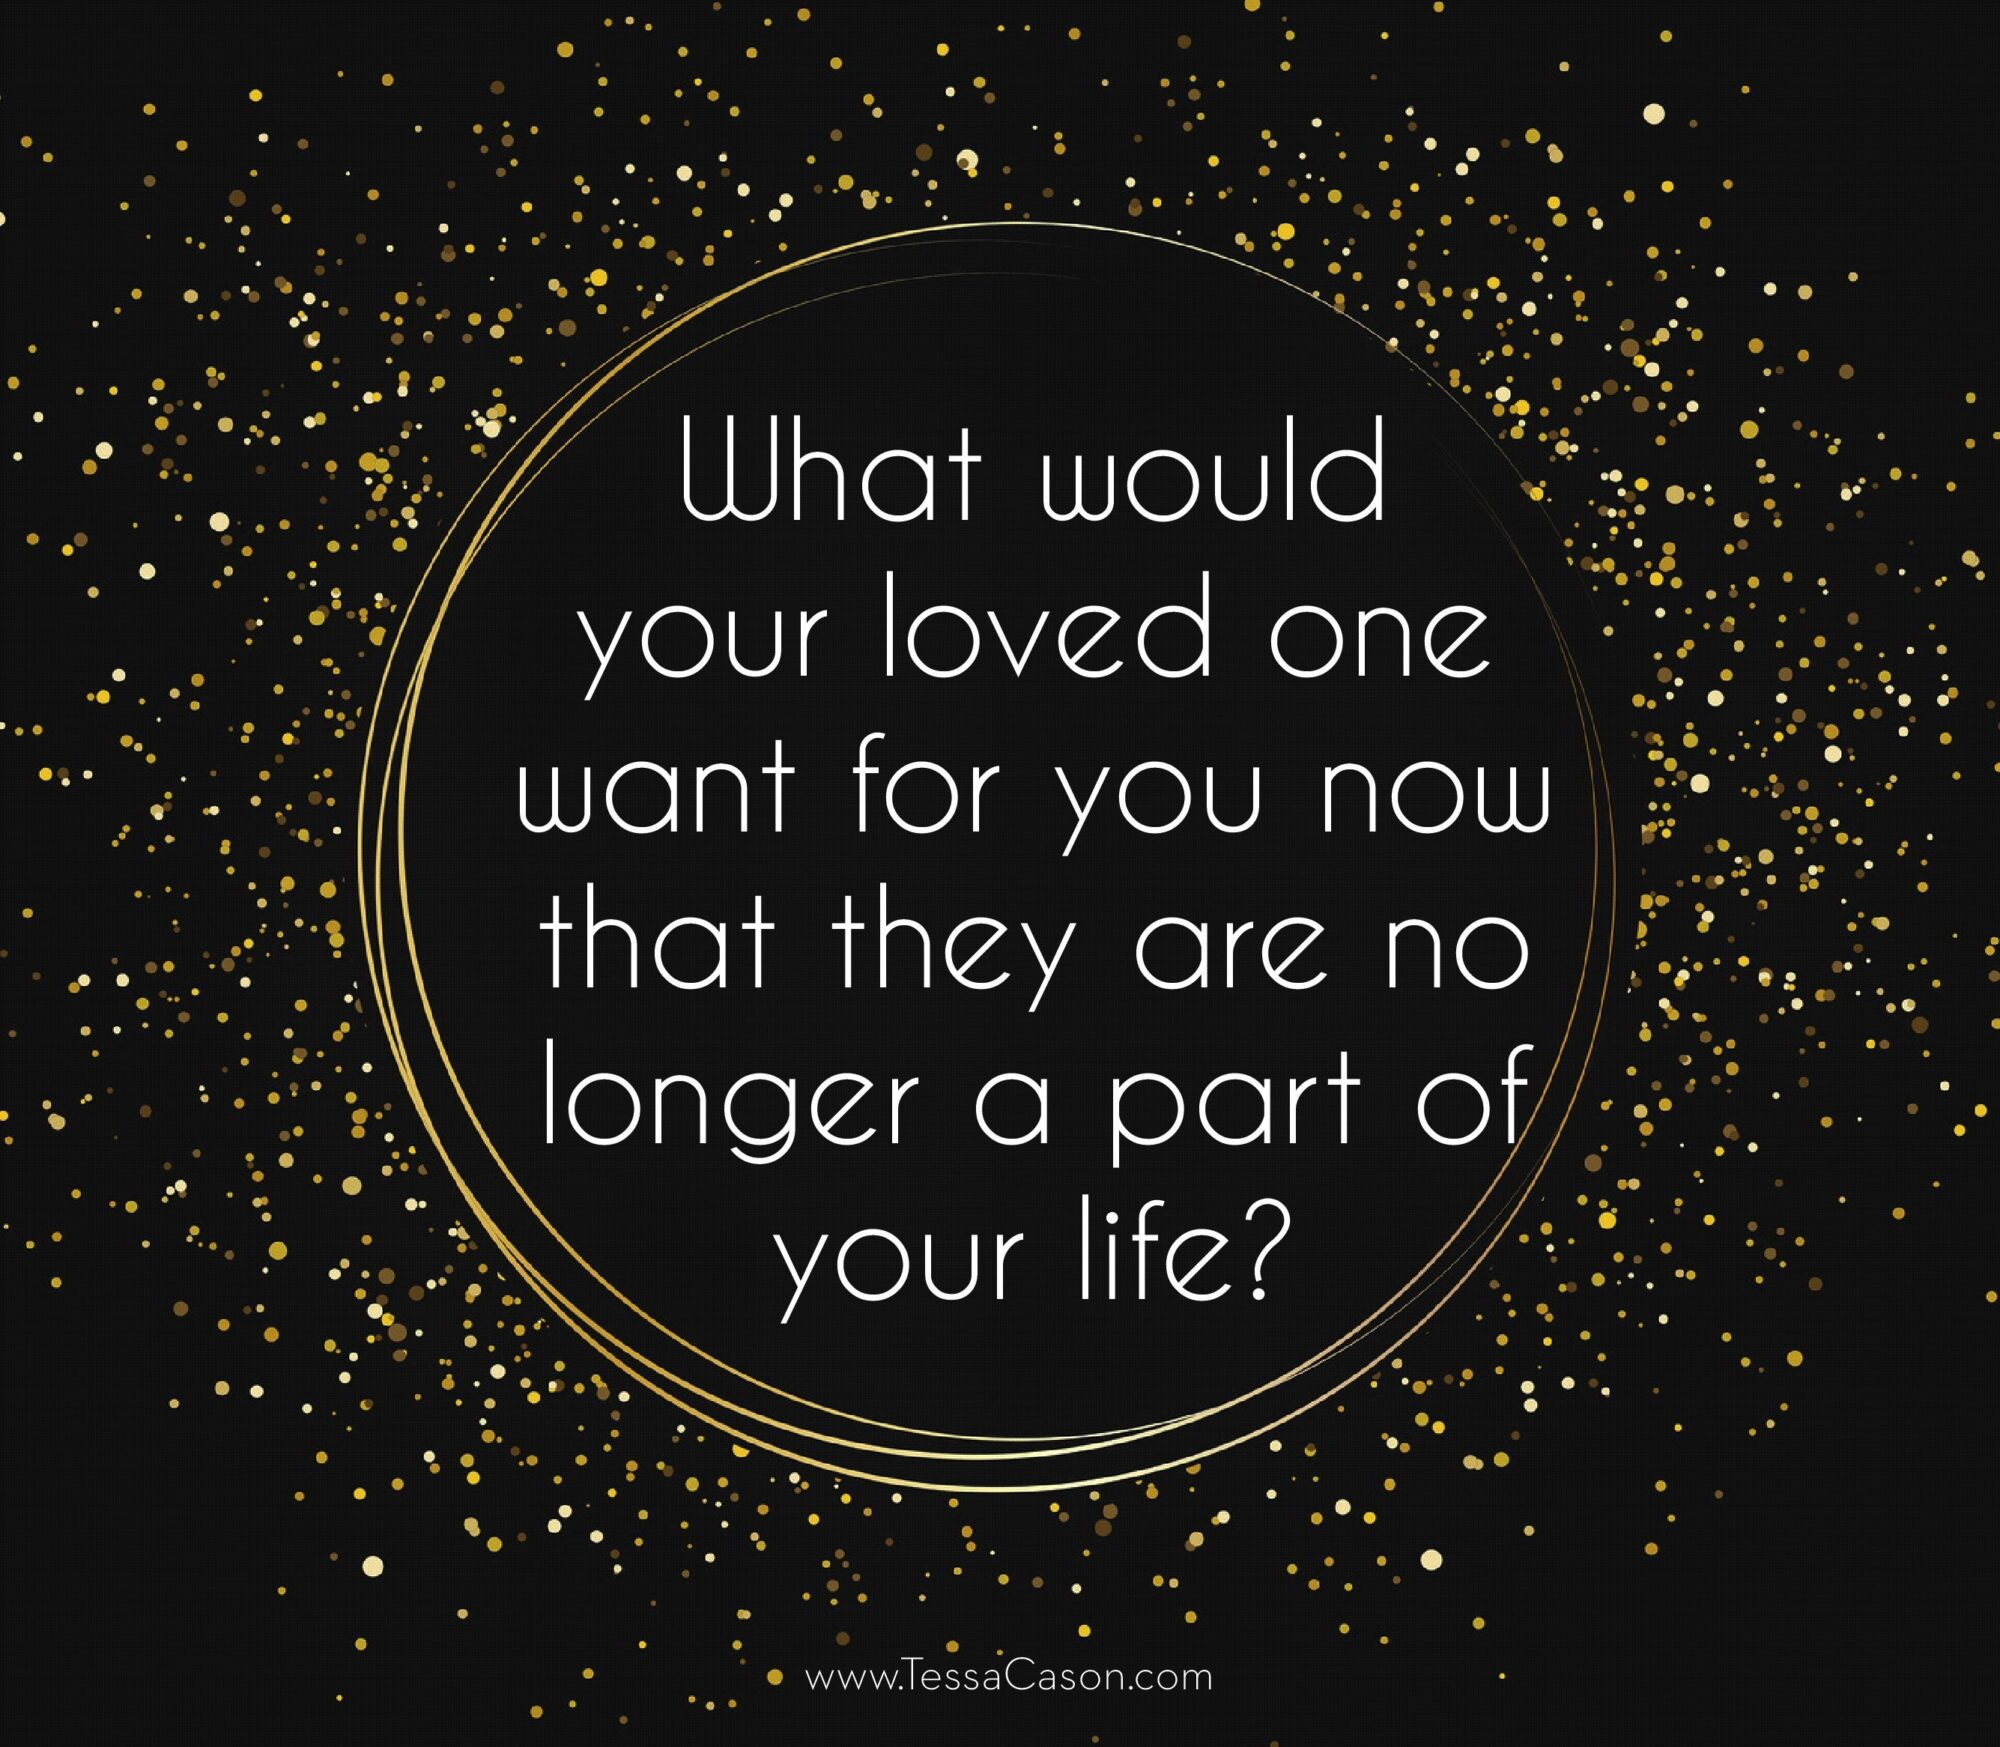 What would your loved on want for you now